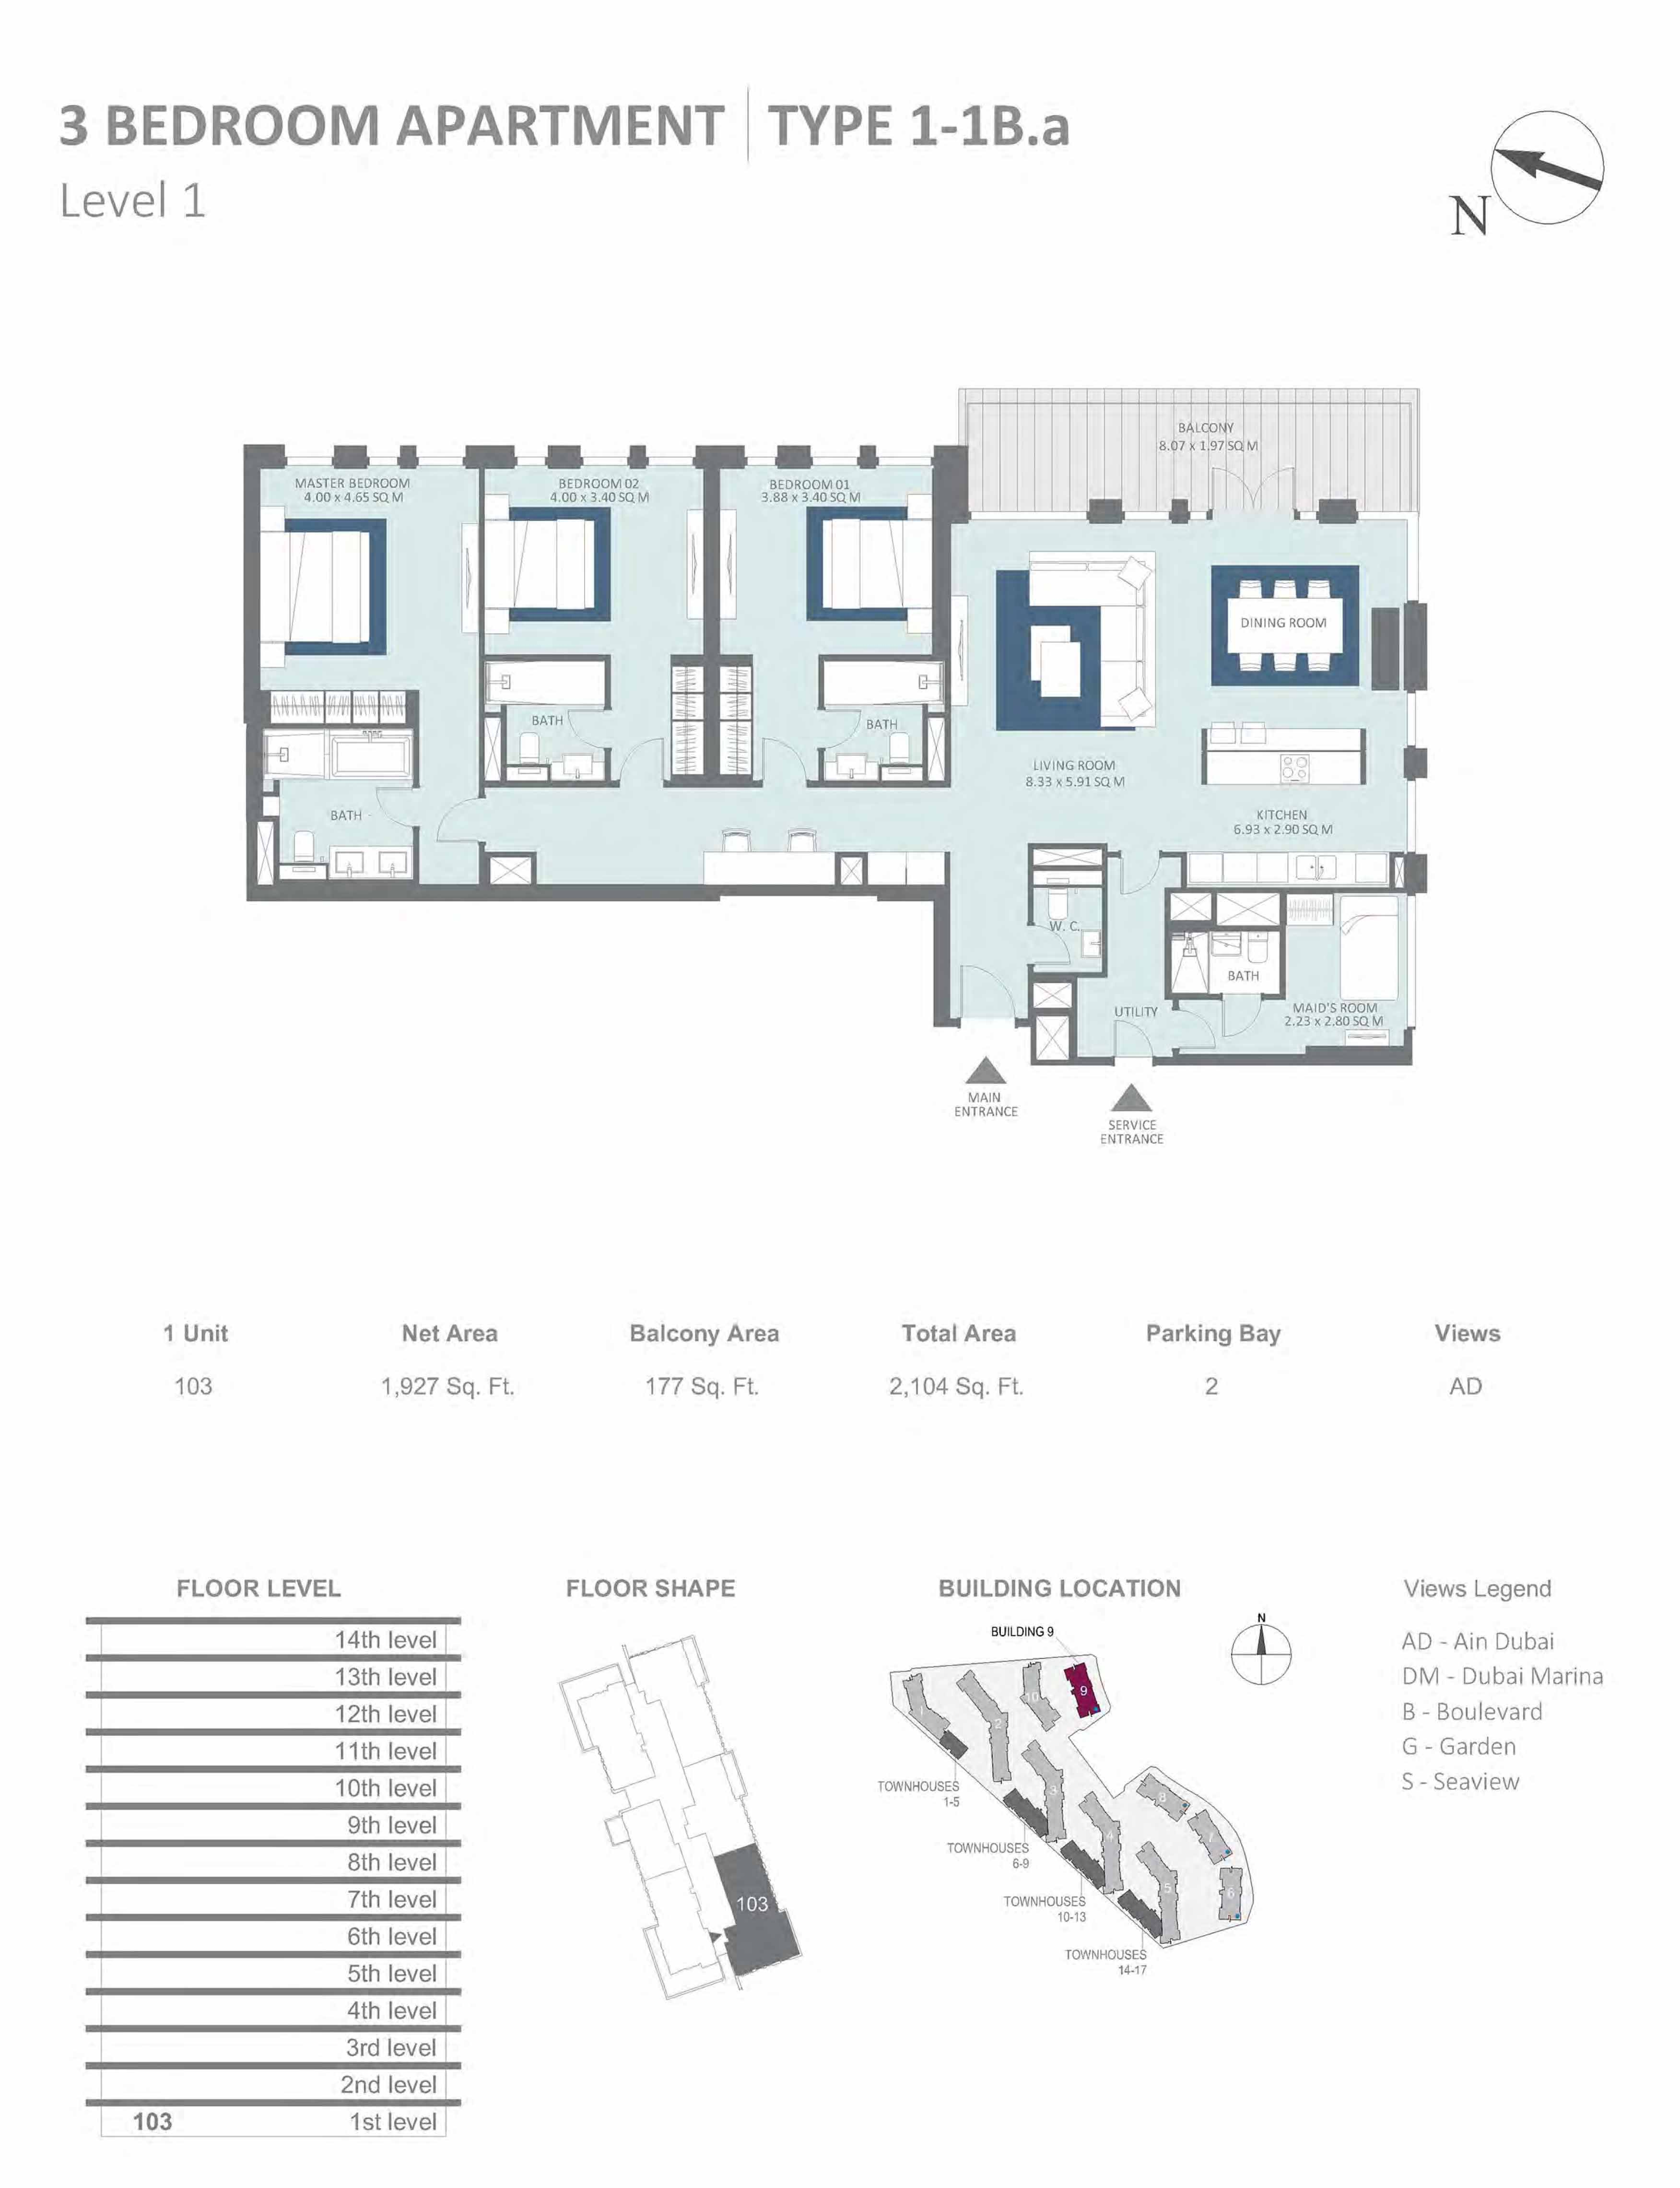 Building 9 - 3 Bedroom Type 1-1B.A, Level 1 Size 2104  sq. ft.